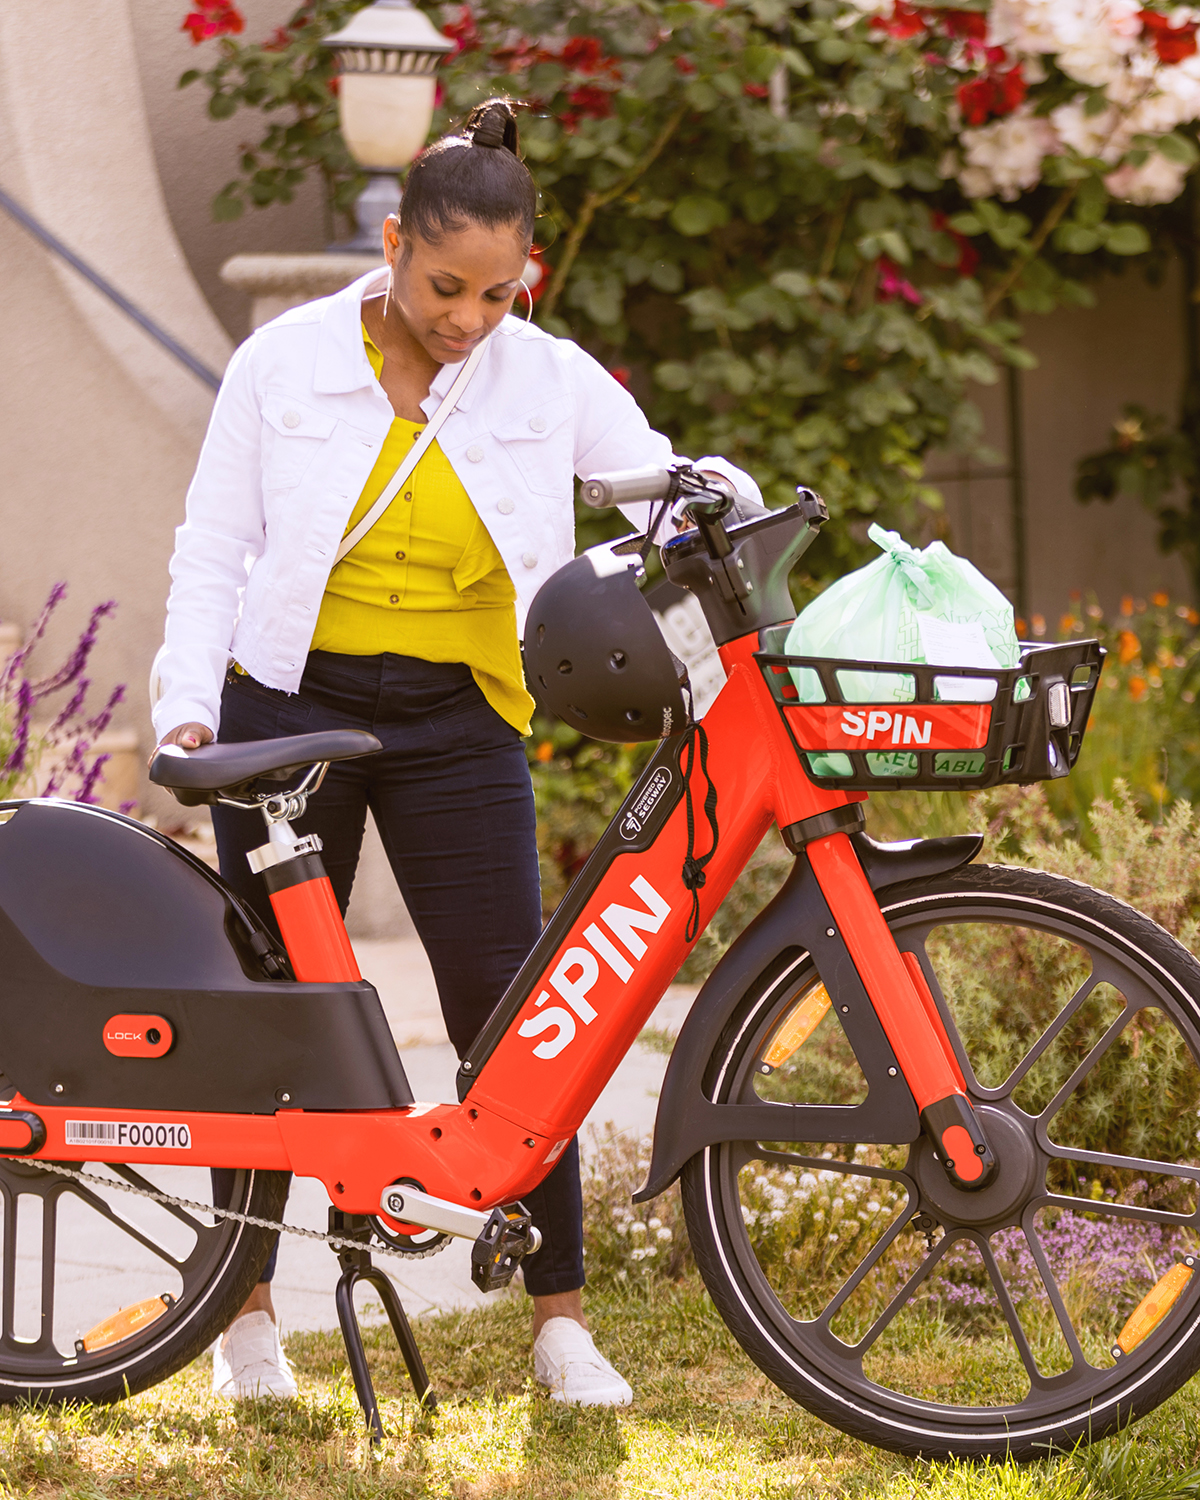 A young woman stands next to a Spin e-bike, with a helmet hanging on the handlebars and a bag in the front basket.